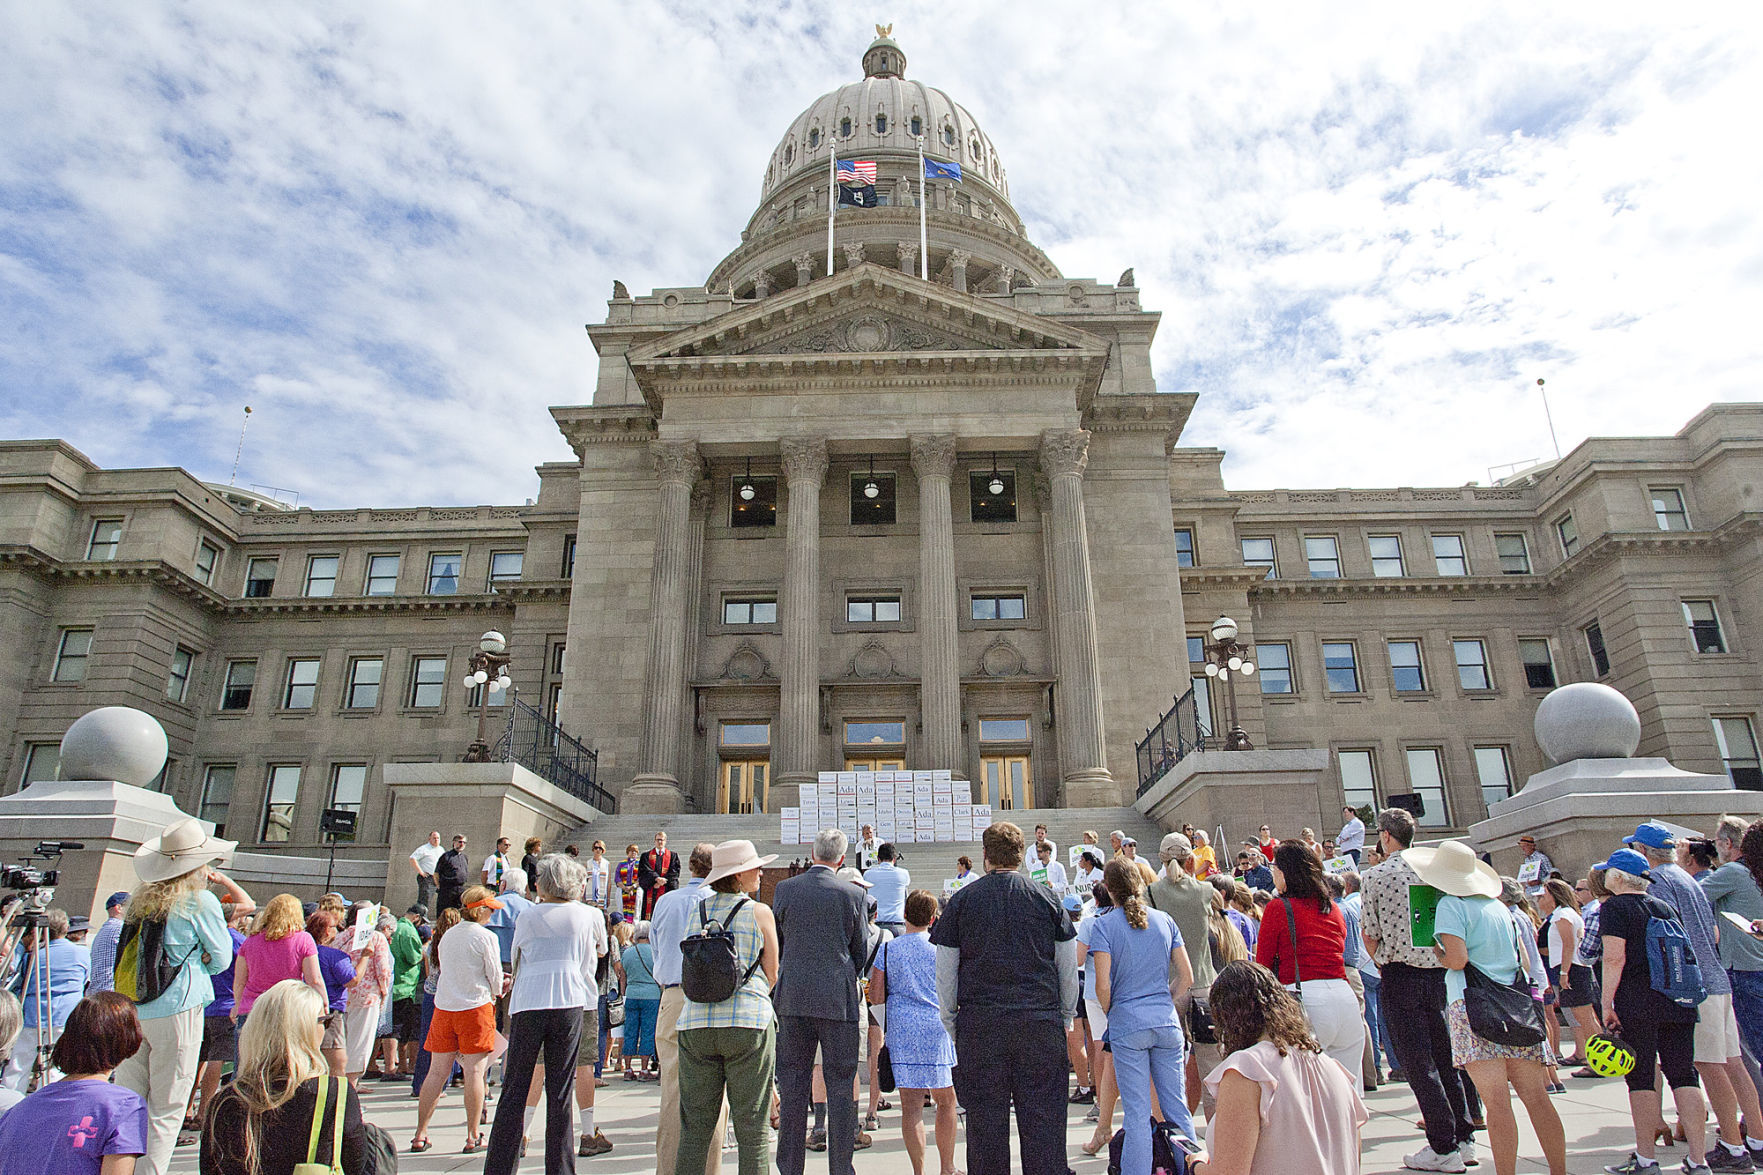 Medicaid supporters, opponents disagree over fiscal impact to Idaho | Idaho Press